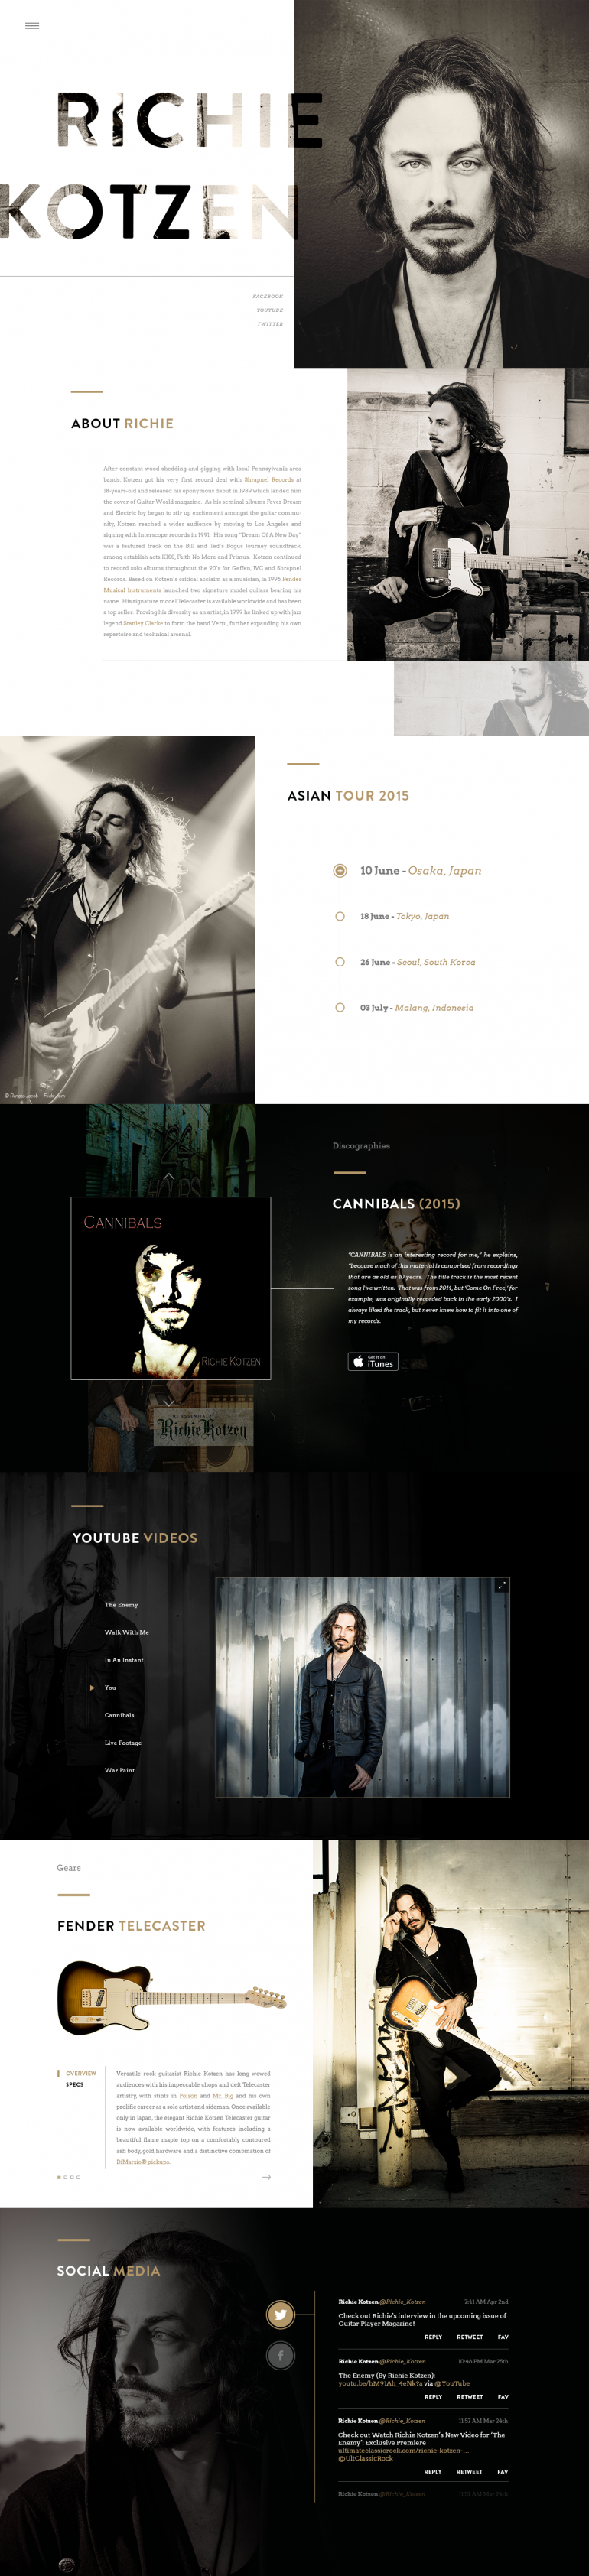 Richie Kotzen Website by Tulus Driyo